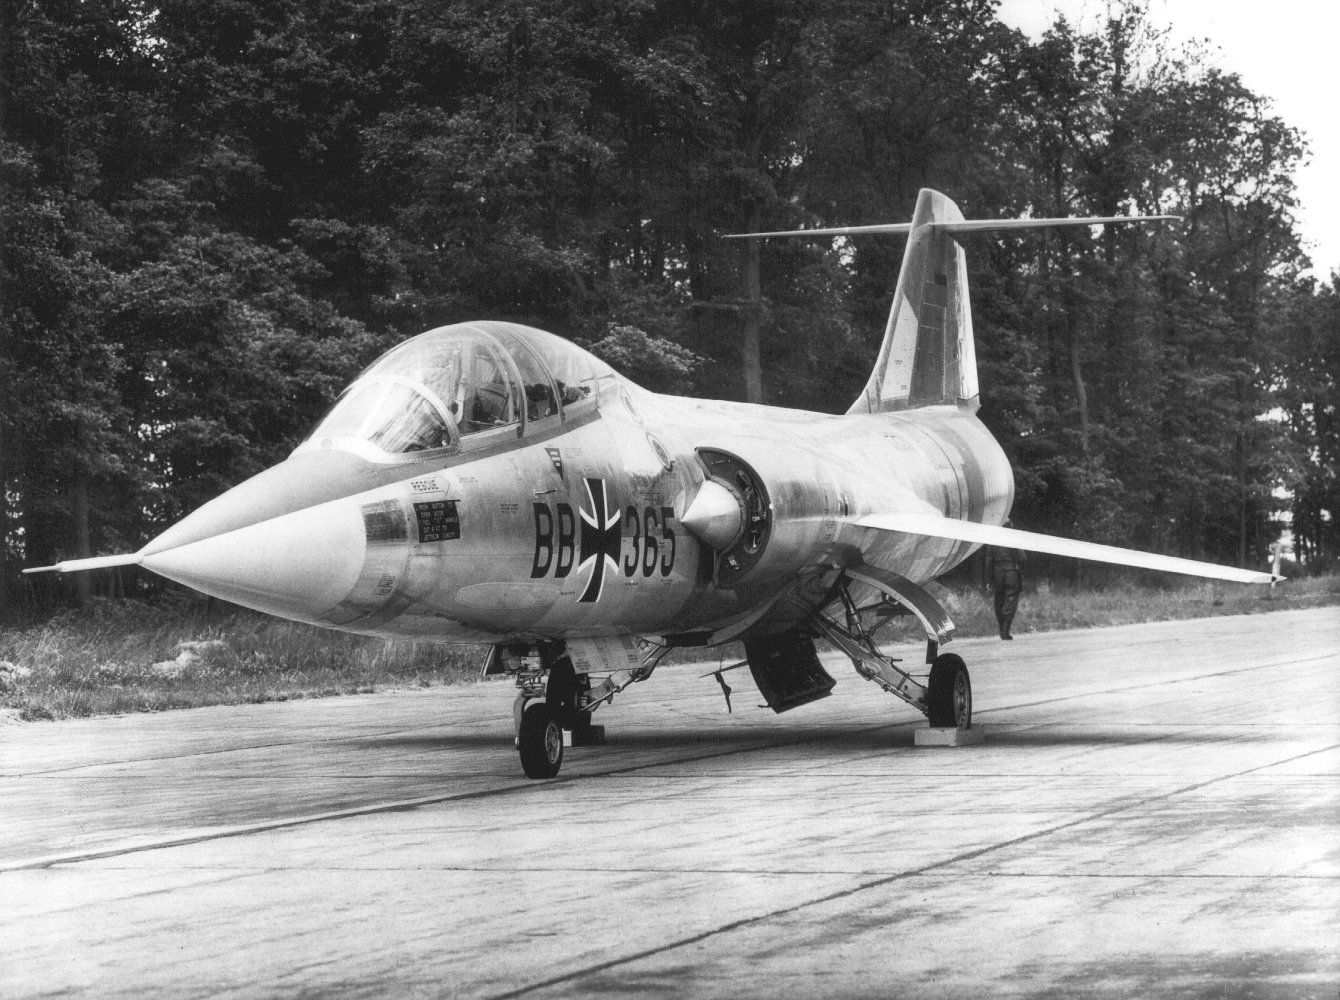 A german f 104f in 1960 aircraft pinterest german aircraft a german f 104f in 1960 military aircraftluftwaffegermanaviationair forceairplanesshipfreeww2 publicscrutiny Images